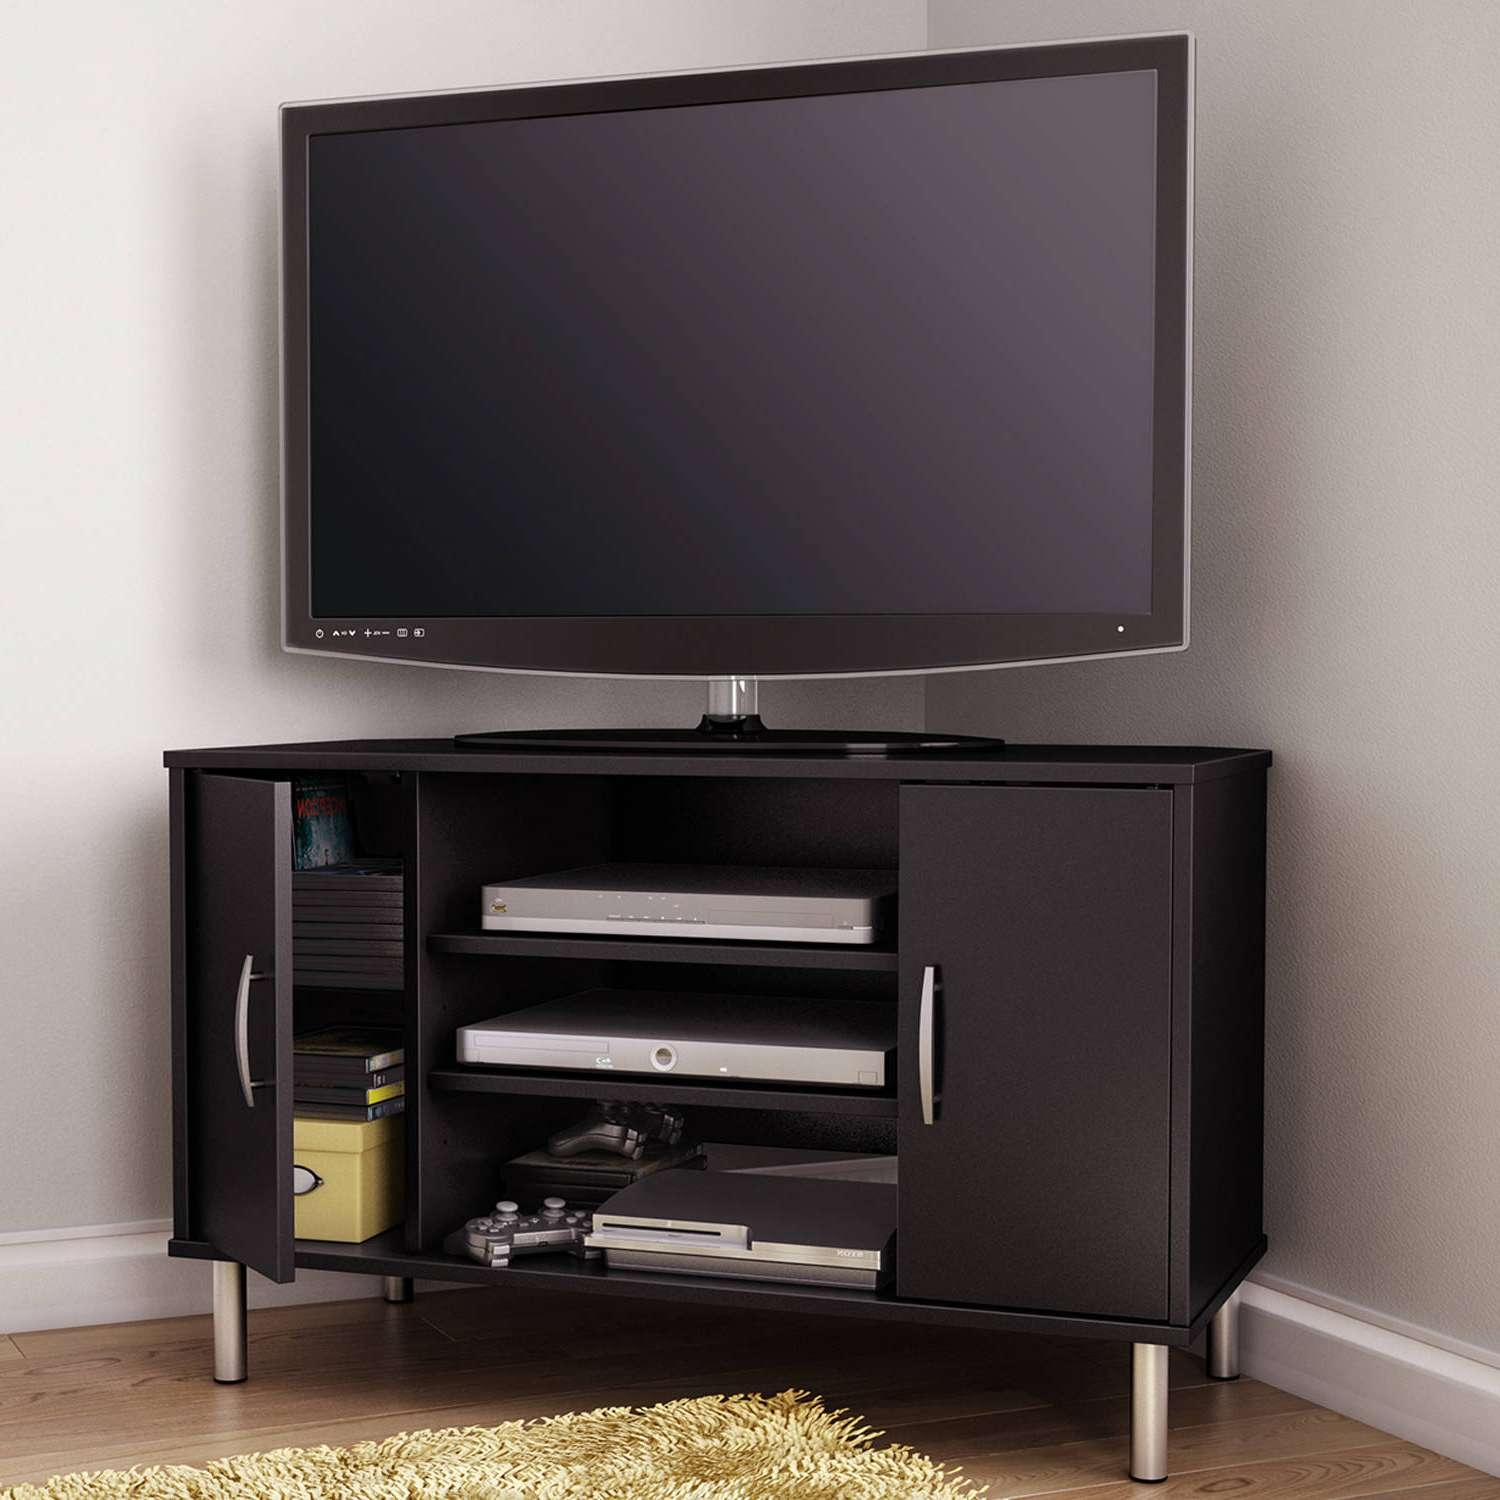 Tv : Tv Stands For Tube Tvs Intrigue Tv Stands For Tube Tvs 36 Pertaining To Tv Stands For Tube Tvs (View 2 of 15)